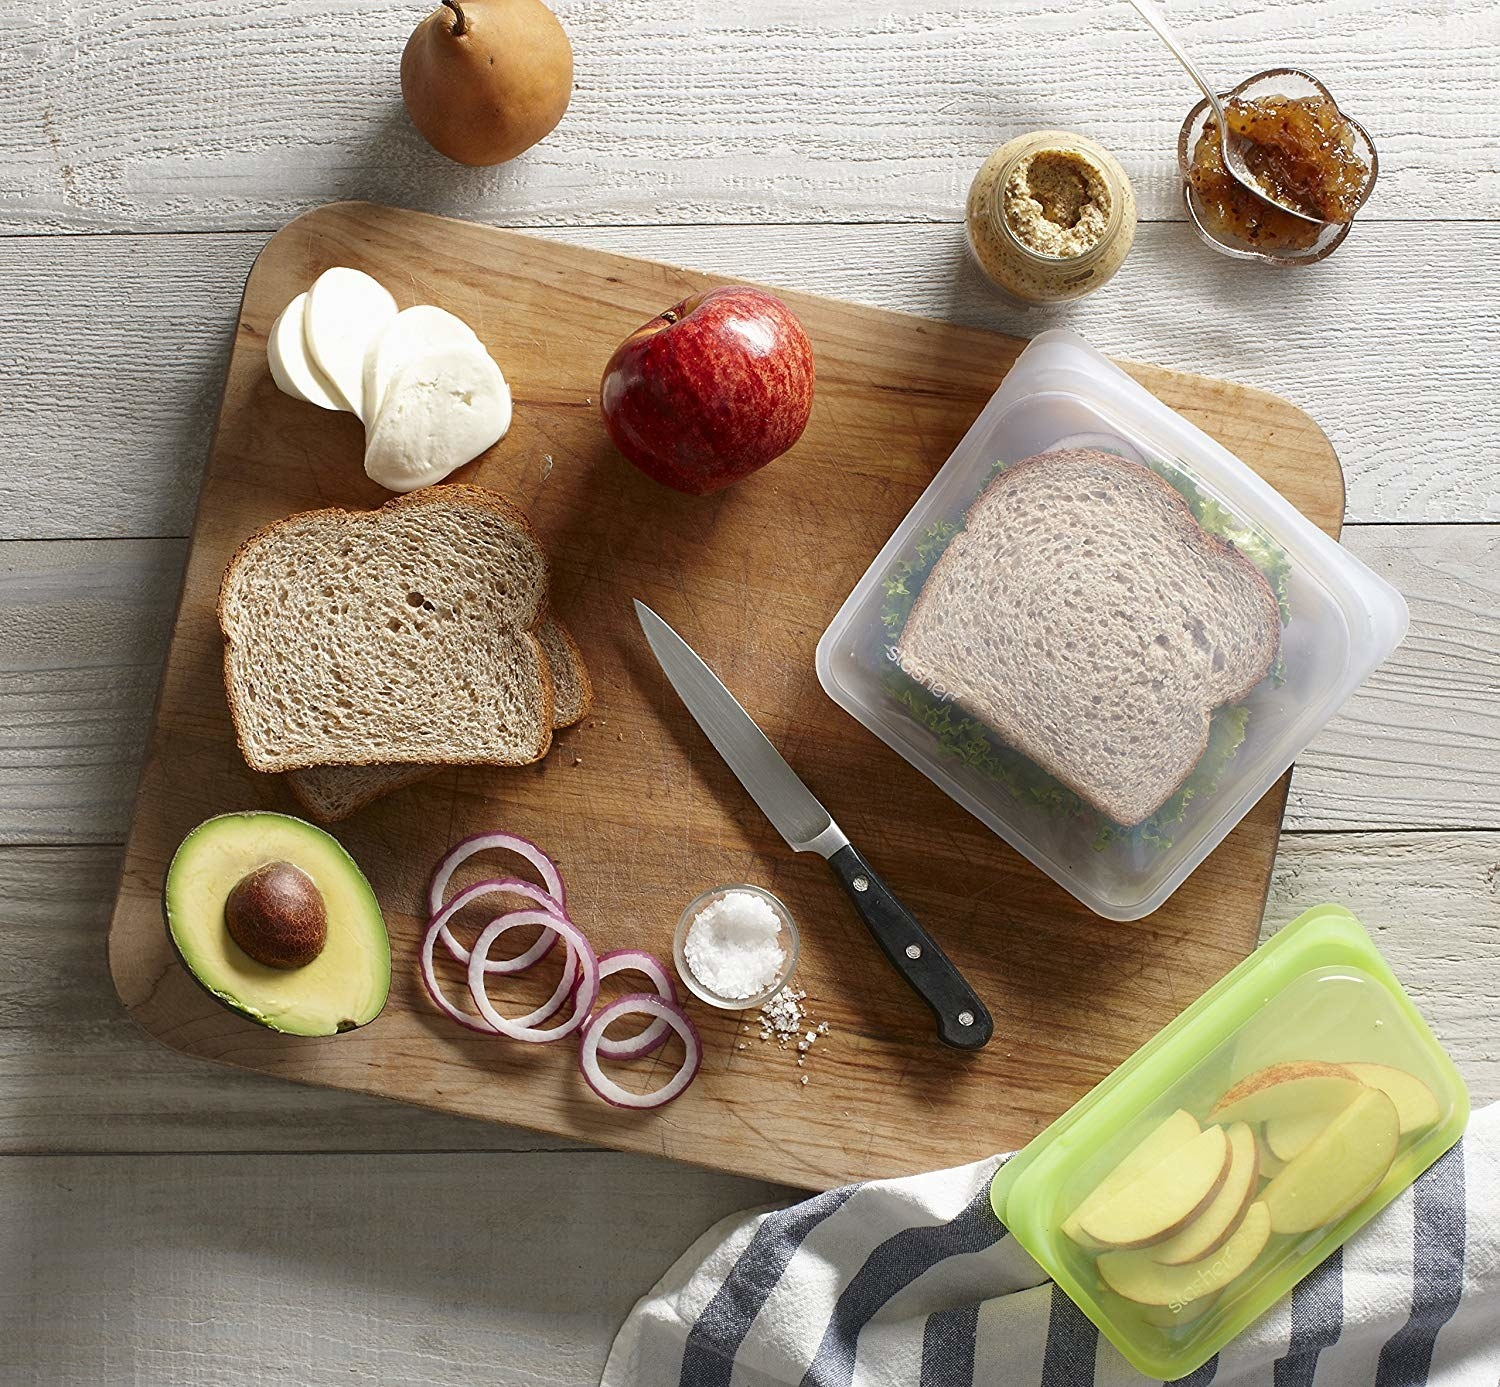 Sandwich being prepped with another inside storage bag. A smaller one holds apple slices.